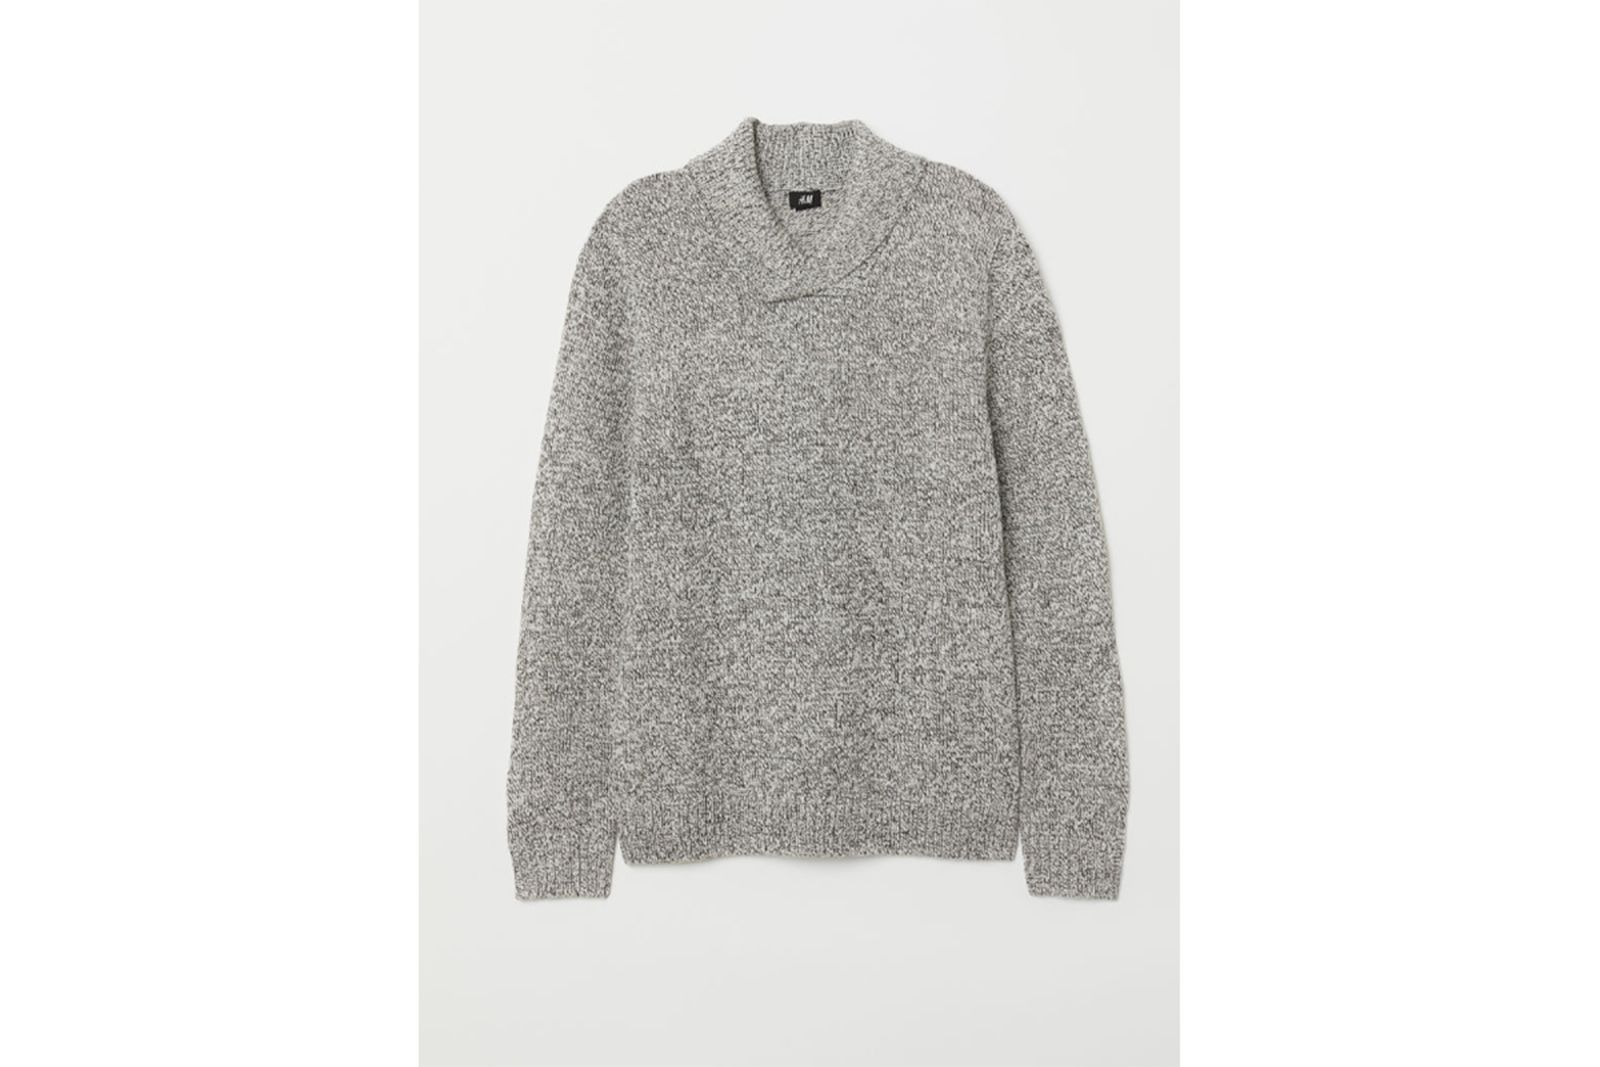 H&M Shawl Collar Sweater Gift Guide holiday